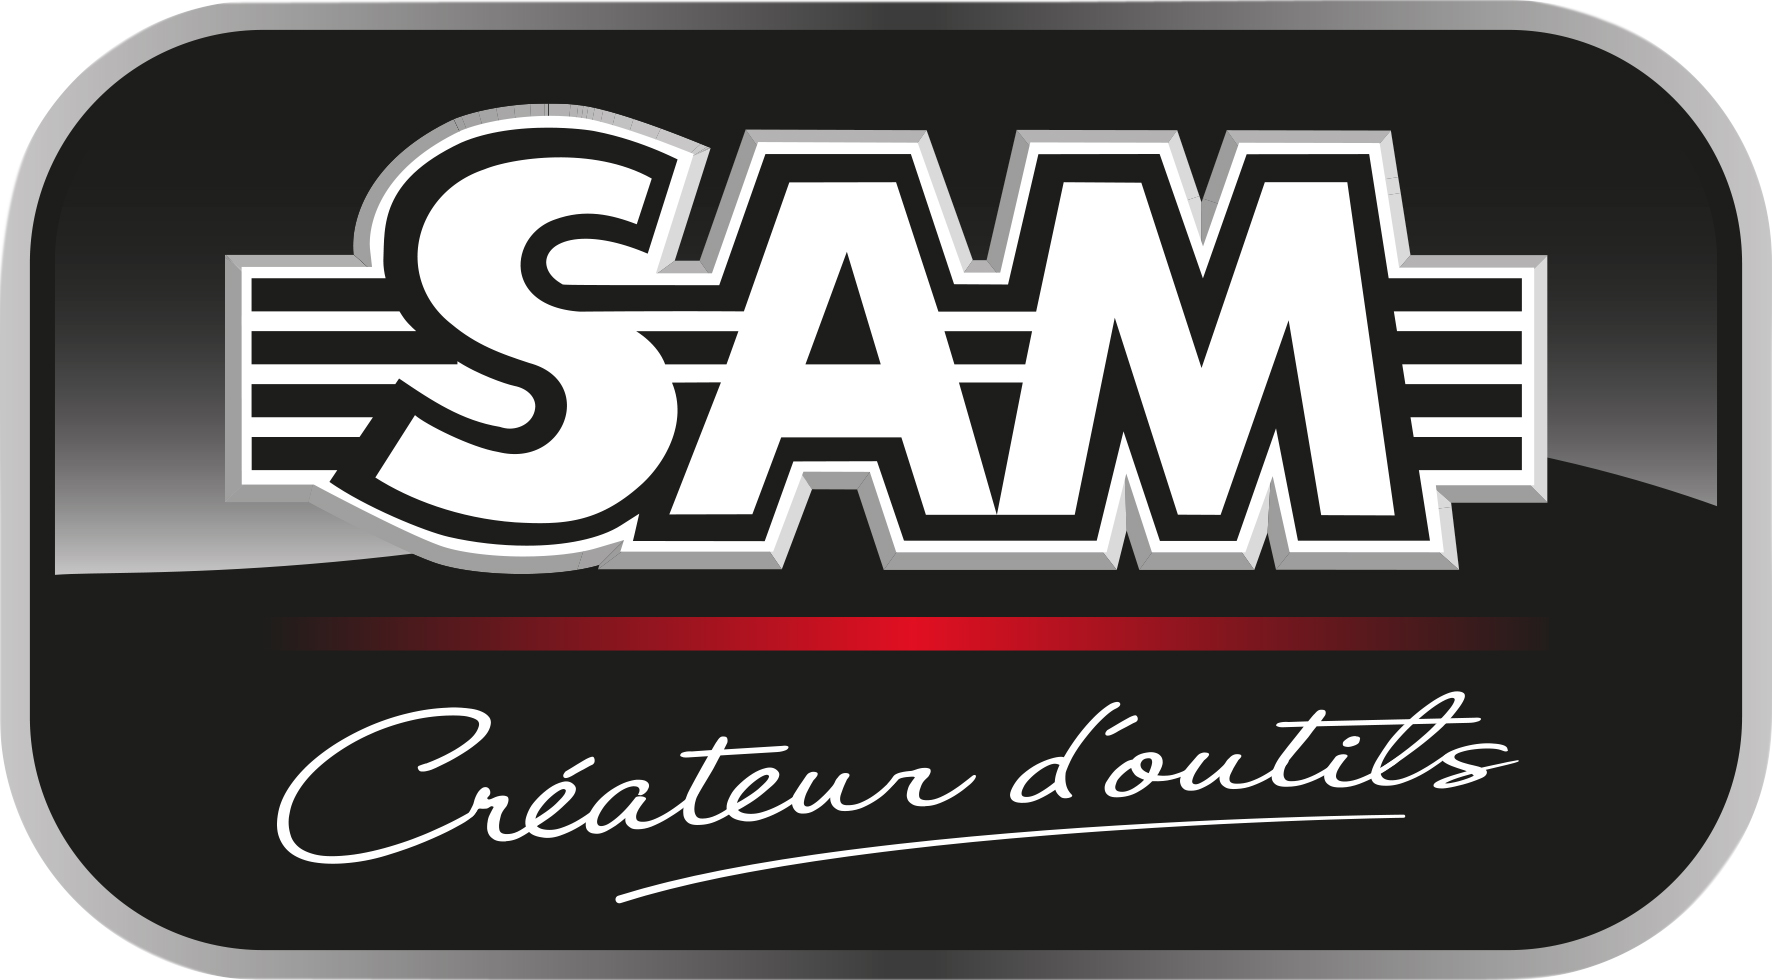 Sam outillage ikada communication and business - Outillage st etienne ...